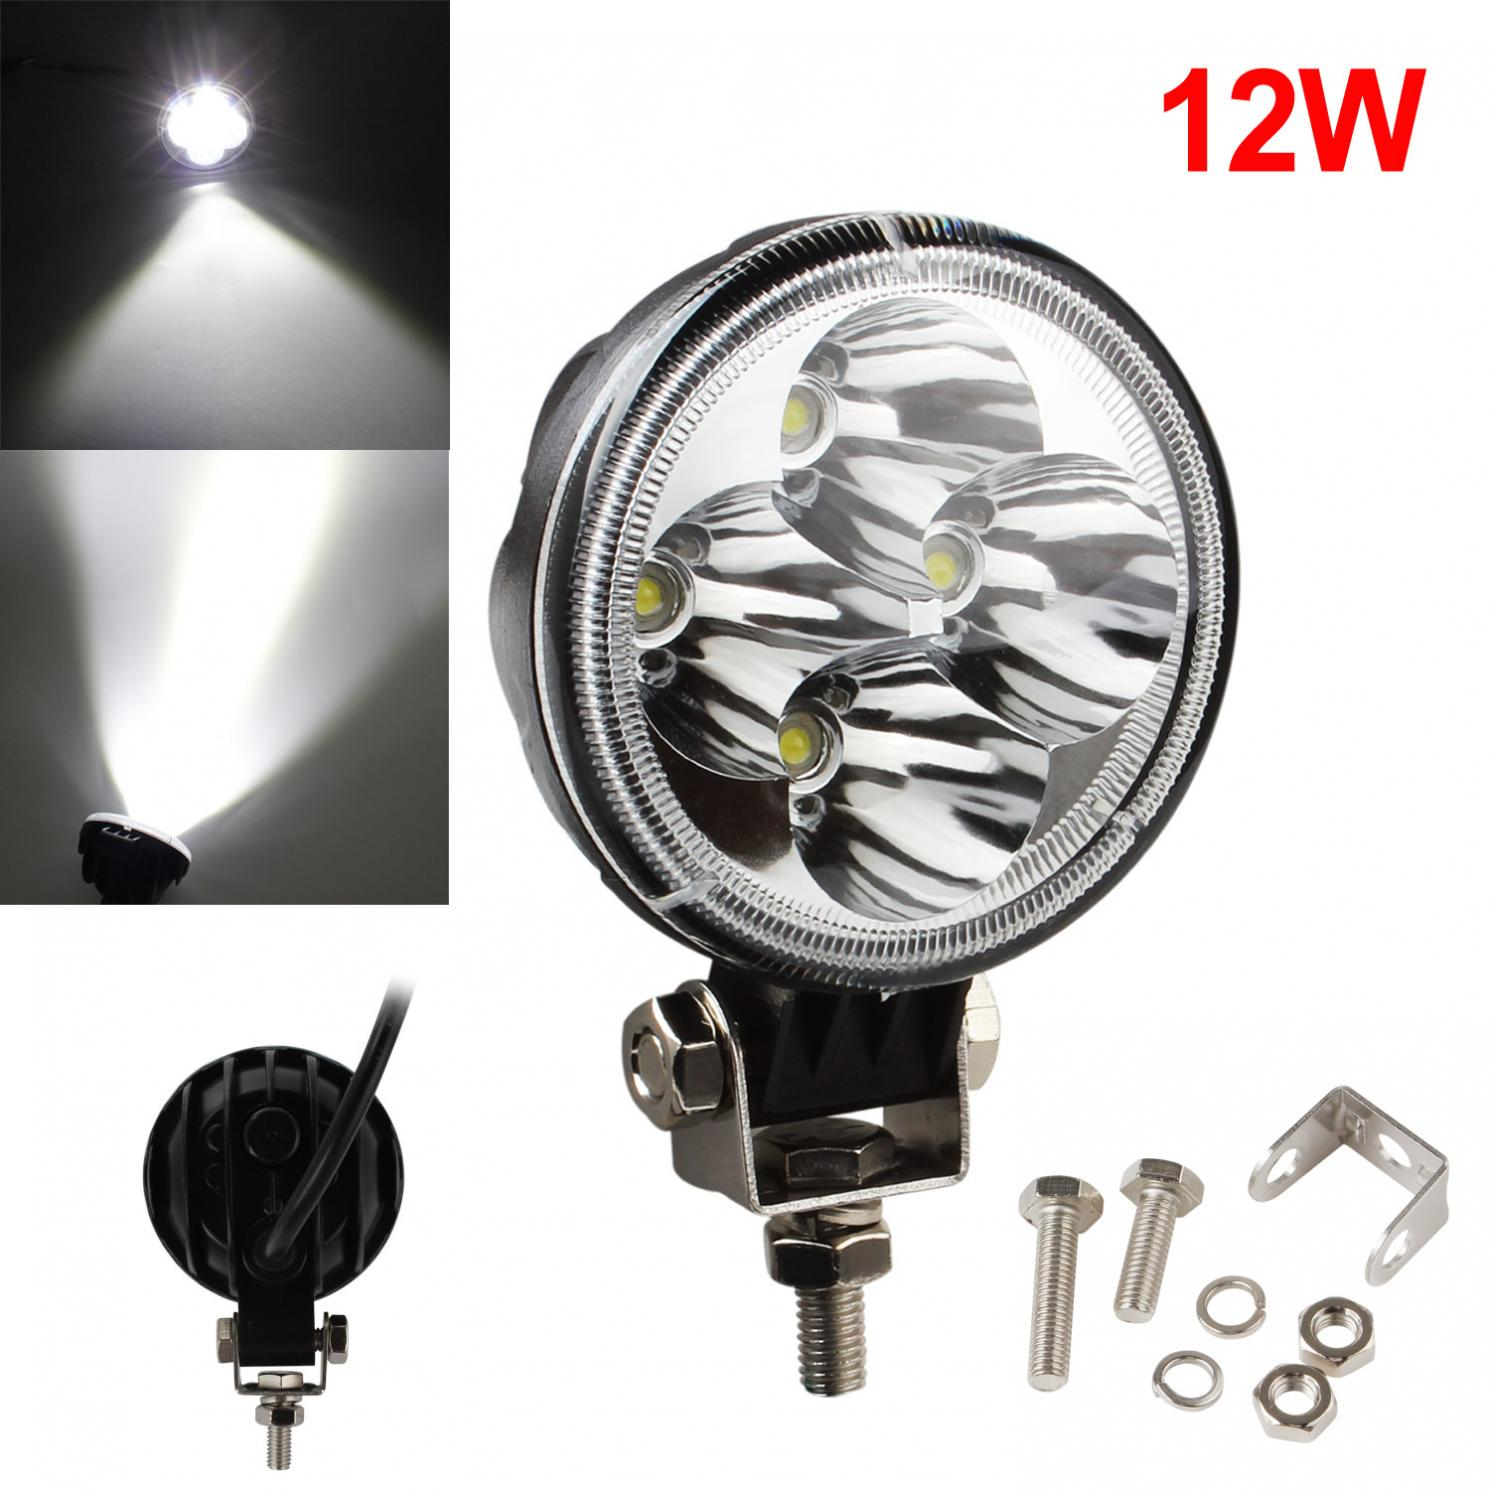 3 Inch 12W 6500K Waterproof LED Working Light Bar for  Motorcycle / Tractor / Boat / 4WD Offroad / SUV / ATV new 15 inch single row 12 3w 36w led light bar for offroad 4 4 suv atv tractor